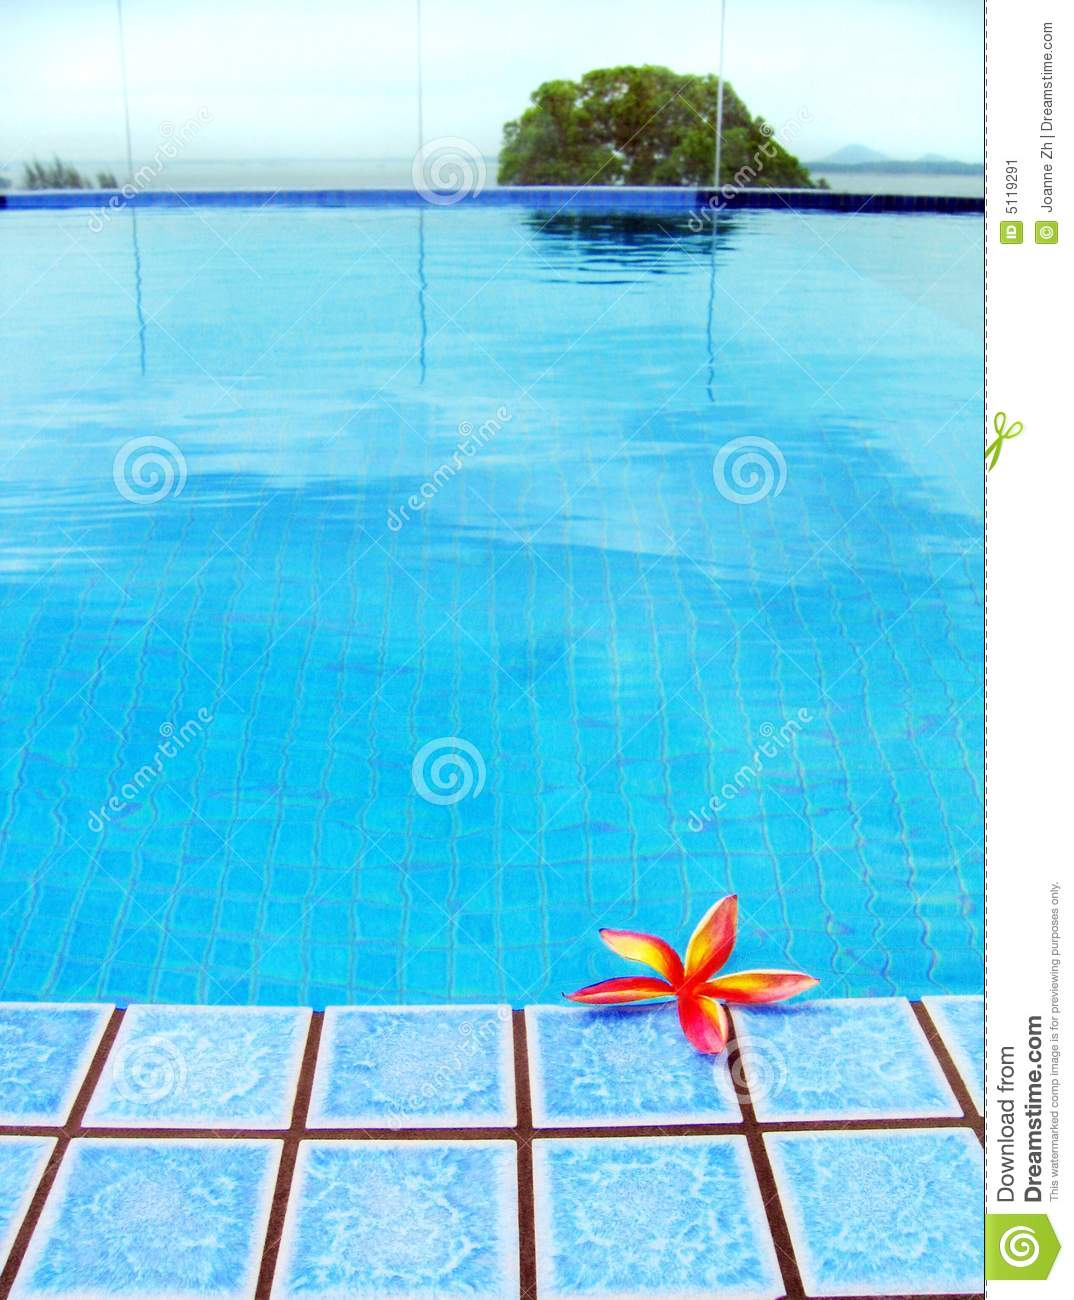 Red Tropical Flower Blue Resort Swimming Pool Stock Image